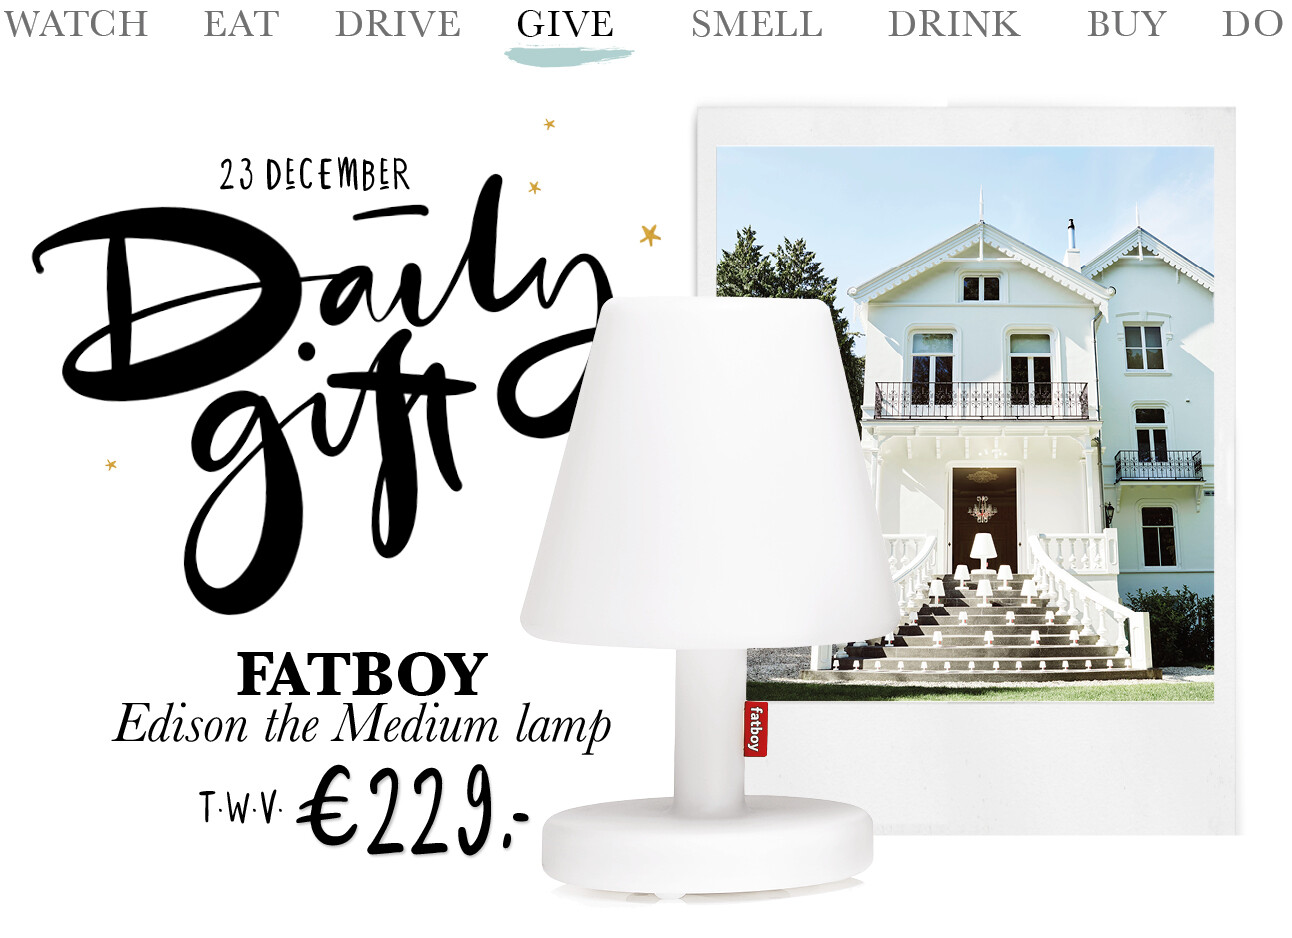 Today we give: een Fatboy Edison the Medium lamp